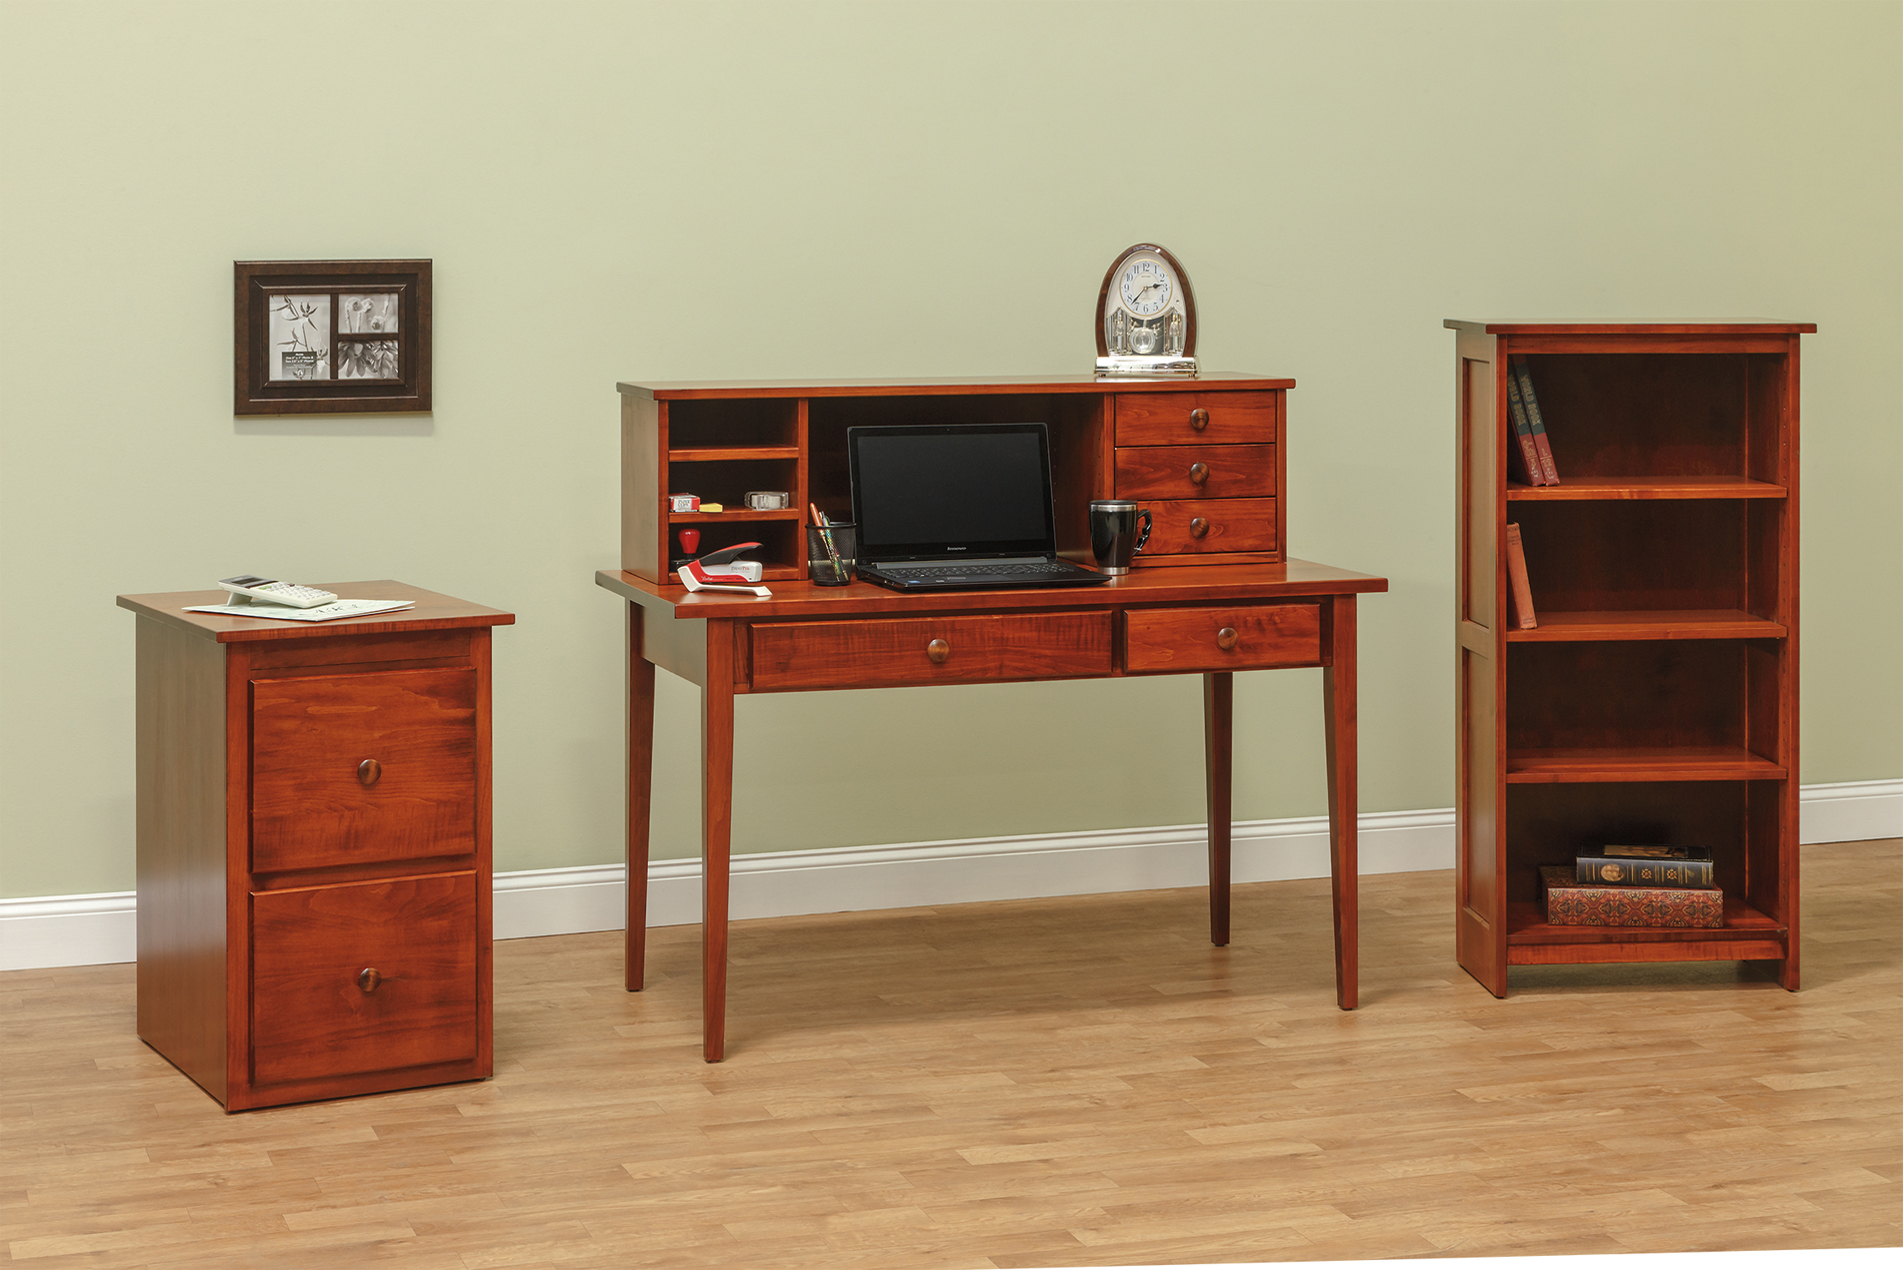 Amish Furniture And Home Furnishings Including Oak And Cherry From